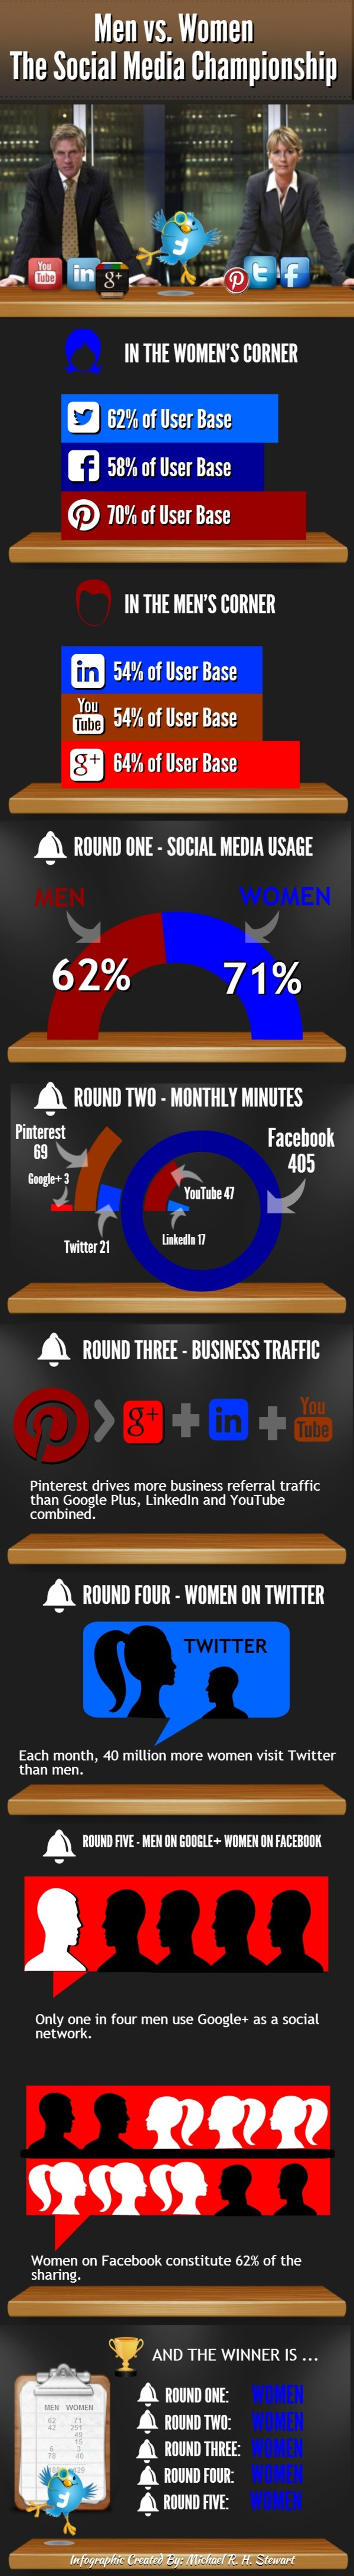 Men vs. Women – The Social Media Championship (Infographic) : Jericho Technology, Inc. | A Marketing Mix | Scoop.it